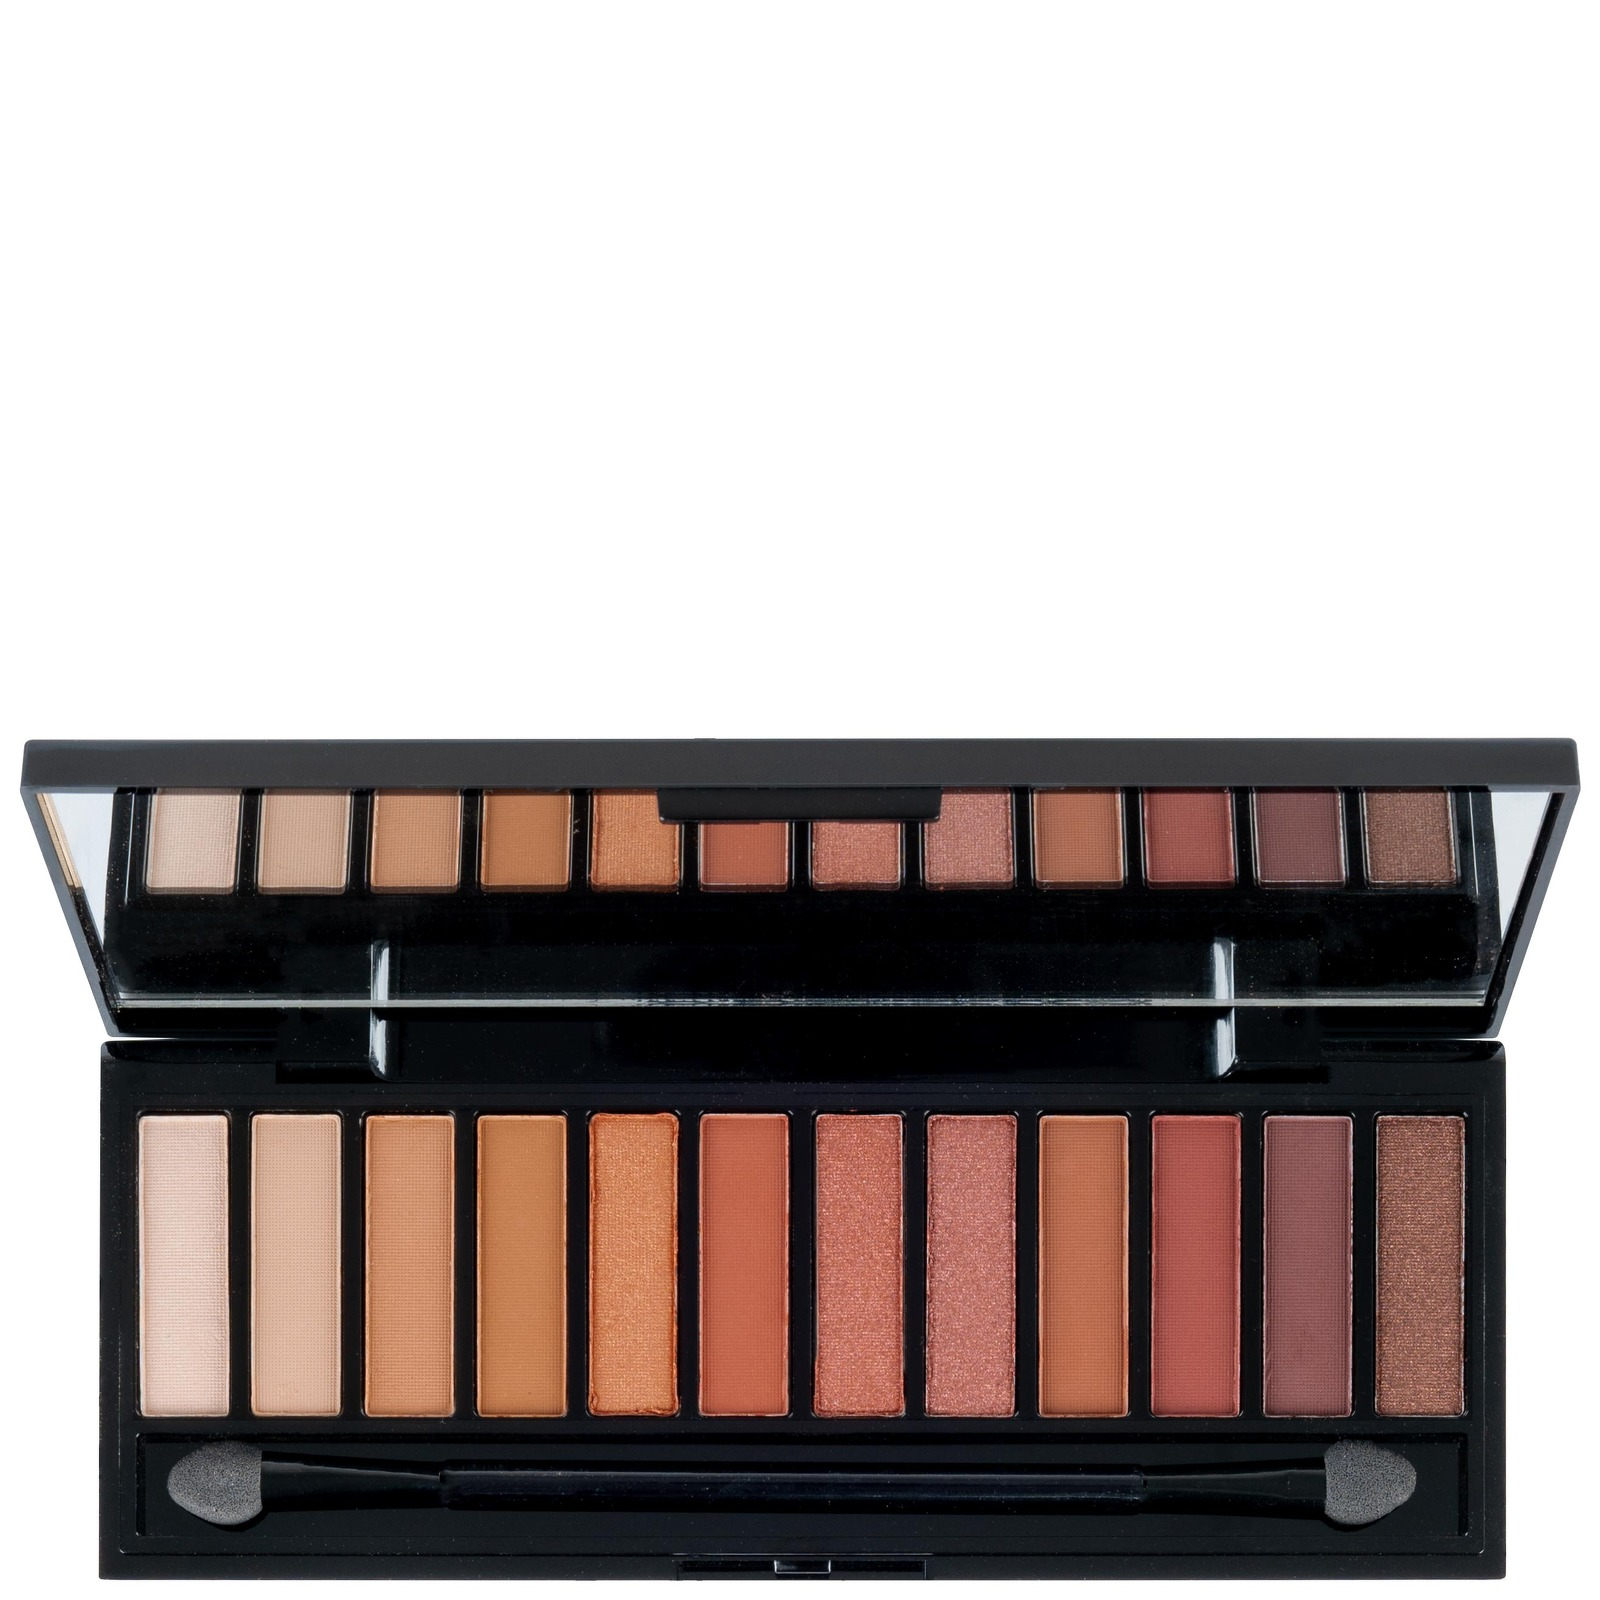 Eye Candy Pro 12 Colour Eye Shadow Palette Hot Collection